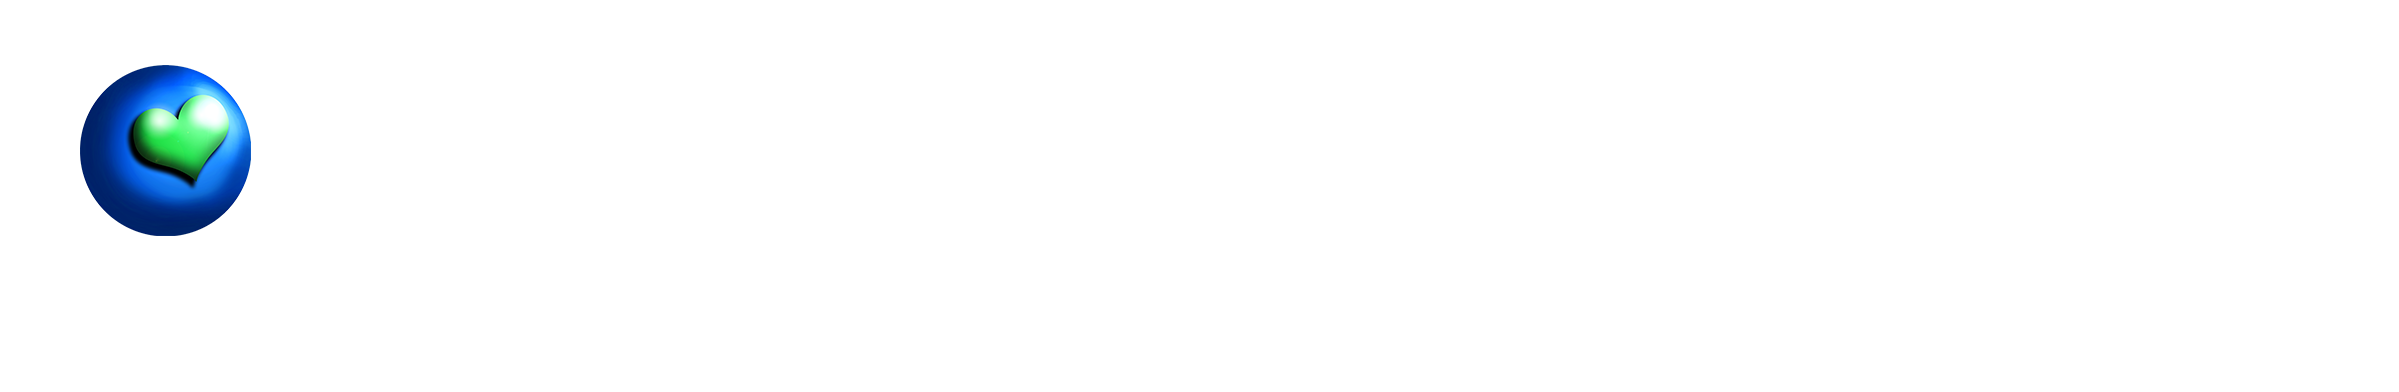 quote 3.png